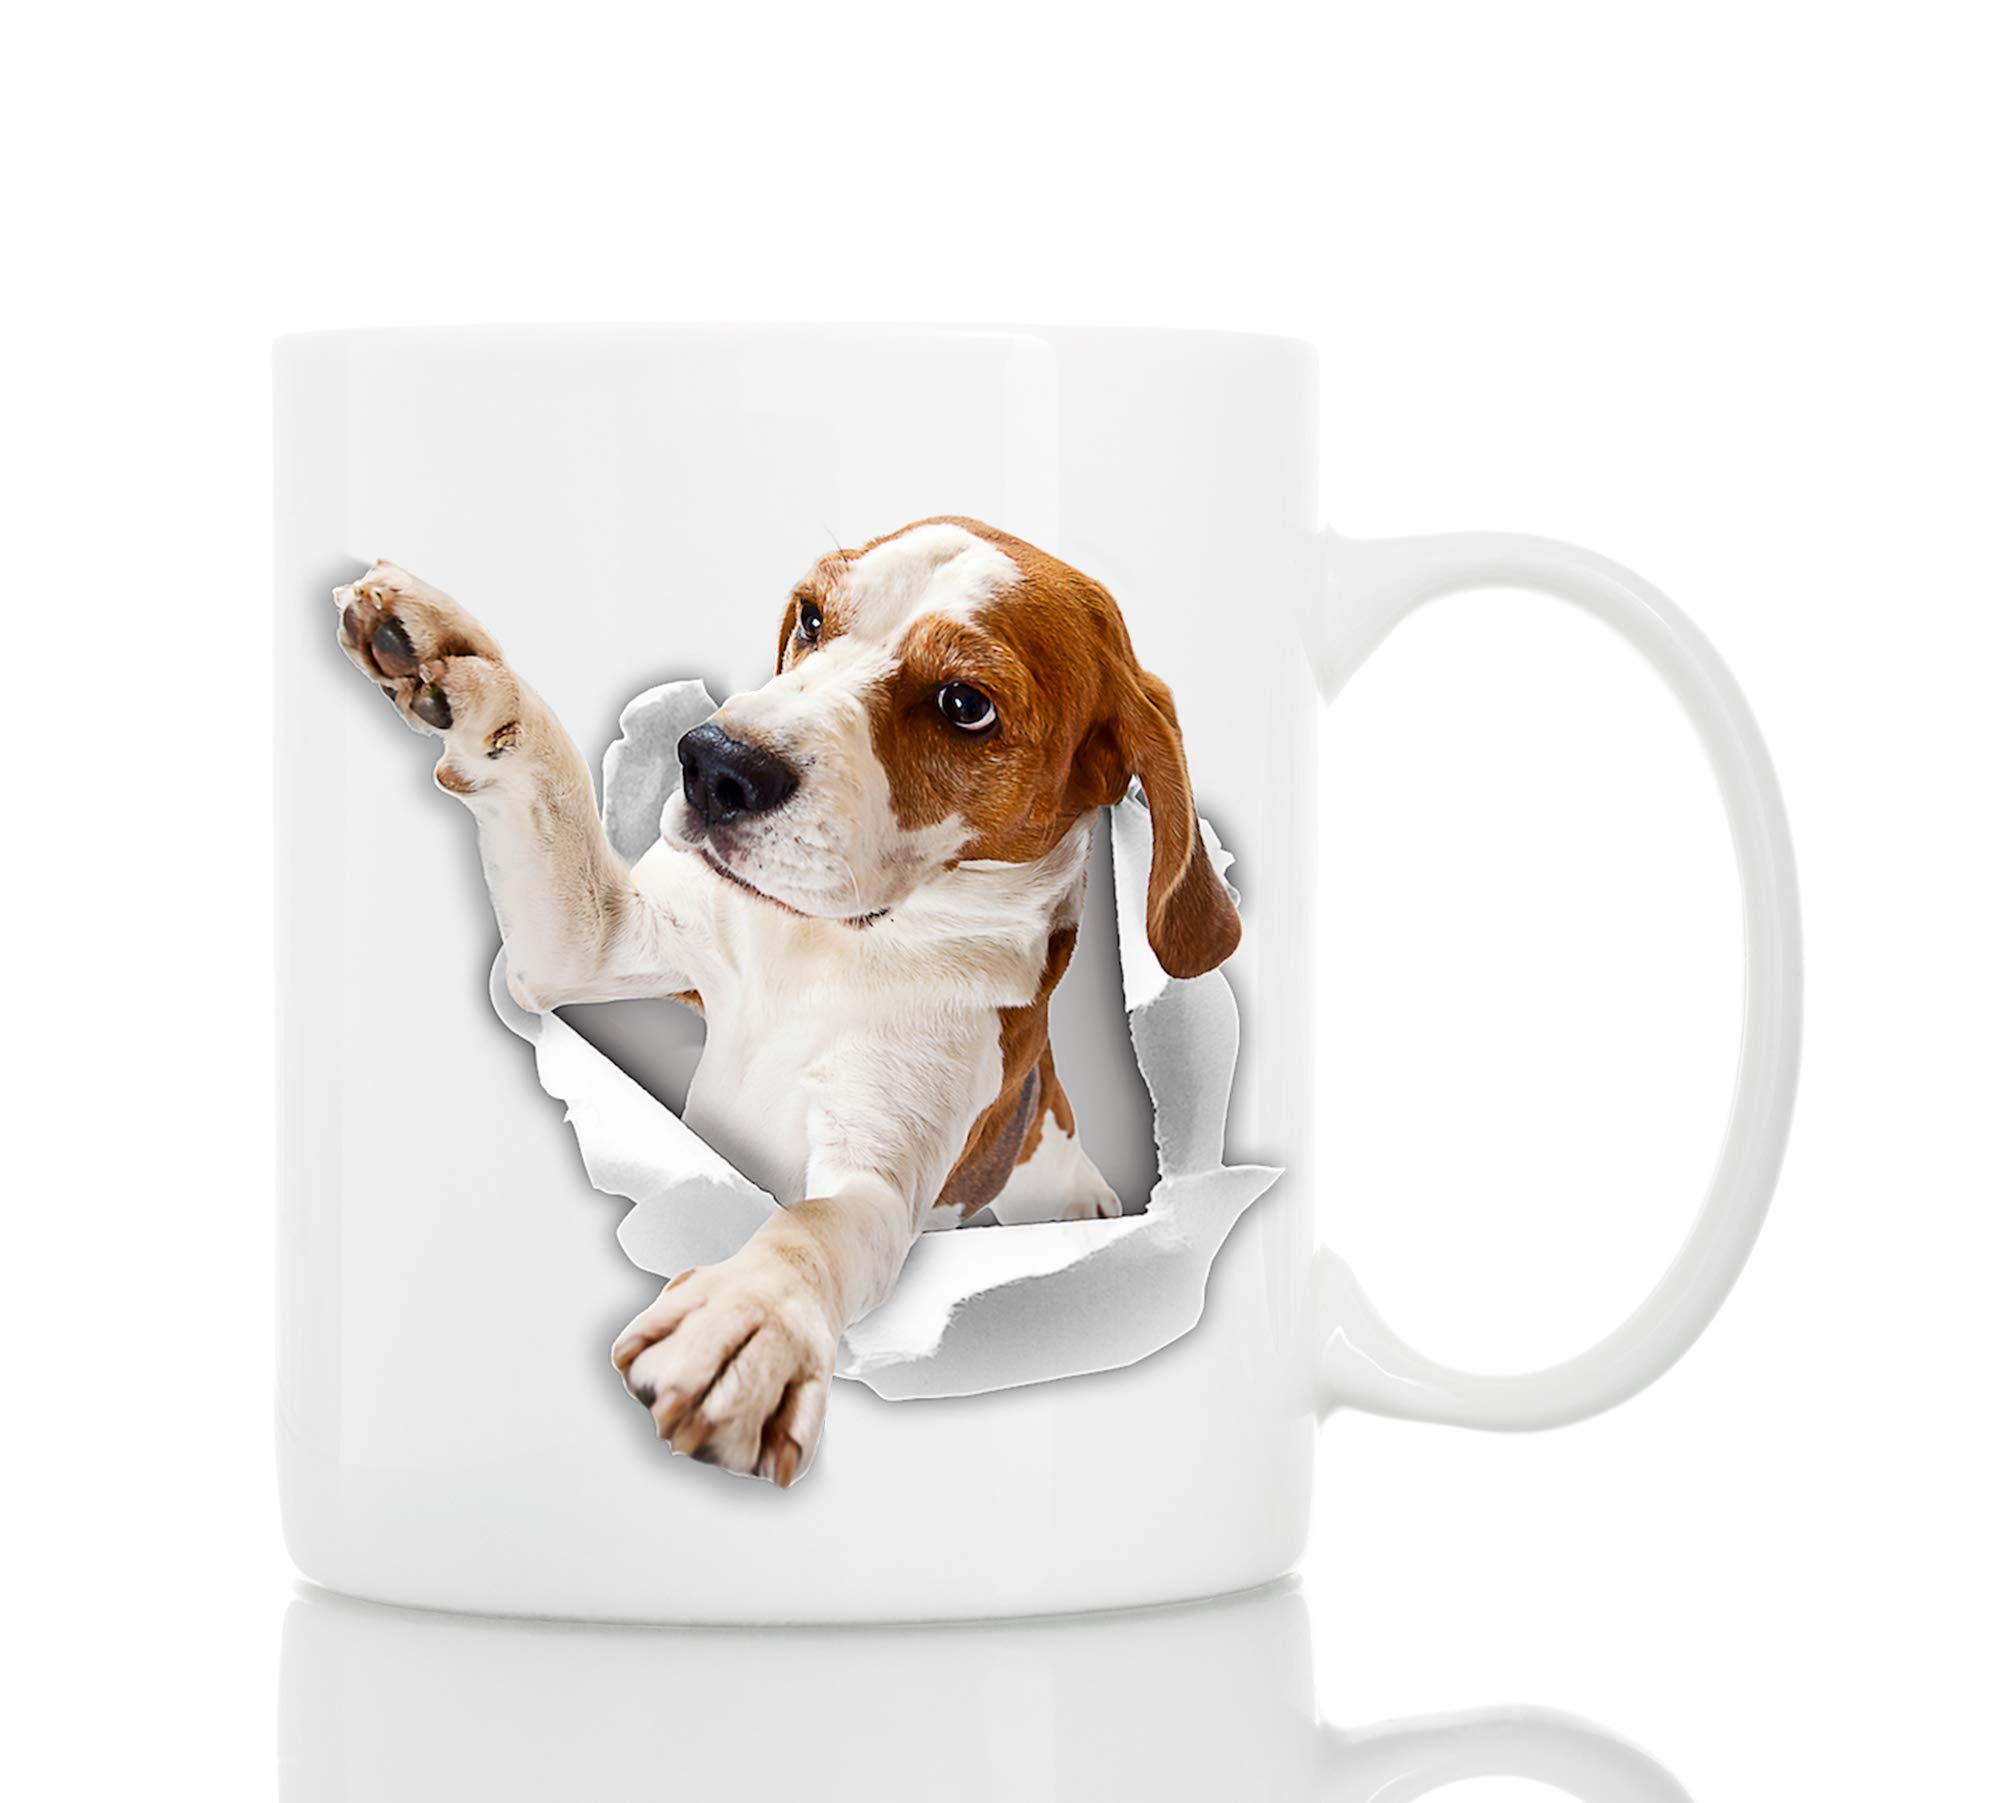 Funny Beagle Dog Mug | Ceramic 11oz Funny Coffee Mug | Perfect Dog Lover Gift | Cute Novelty Coffee Mug Present | Great Birthday or Christmas Surprise for Friend or Coworker, Men and Women